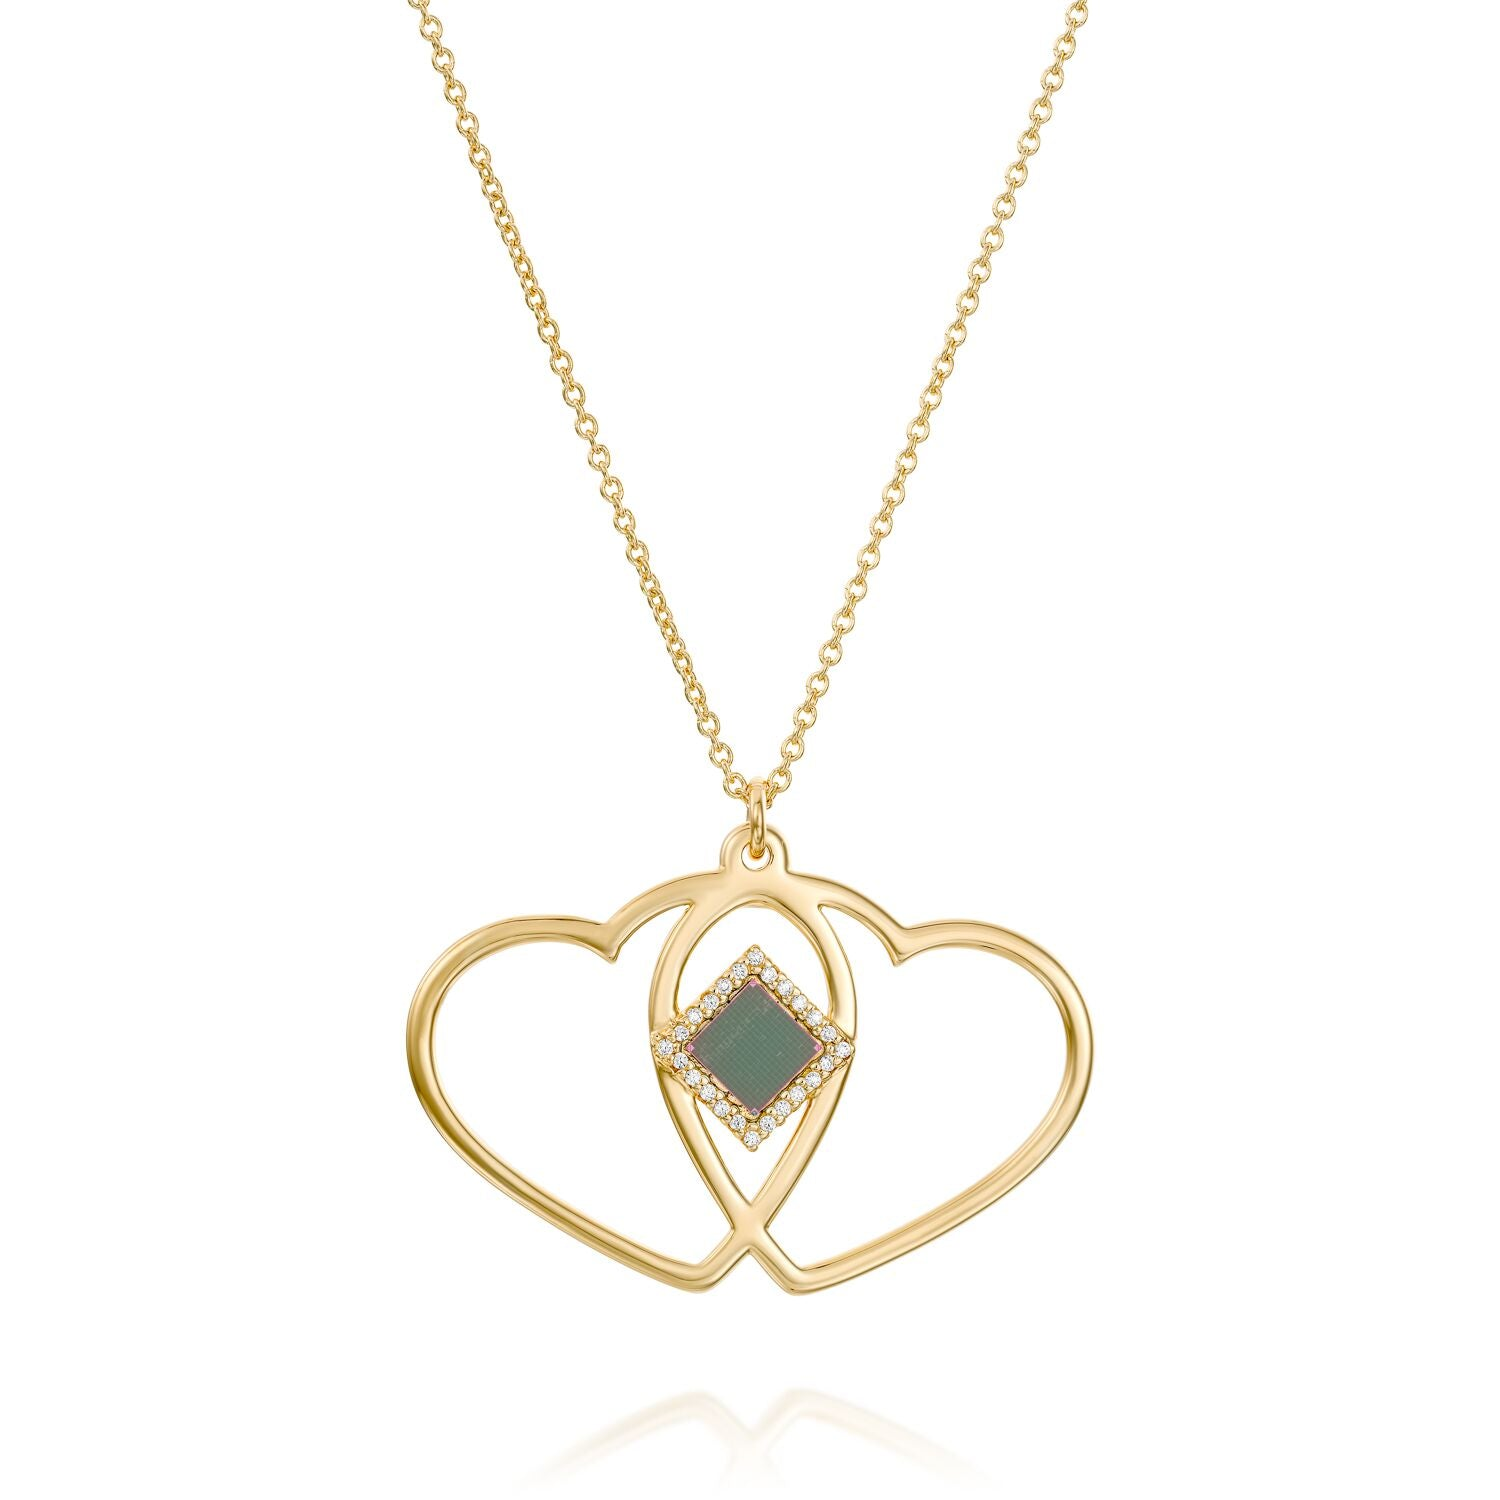 Bond of Love Necklace